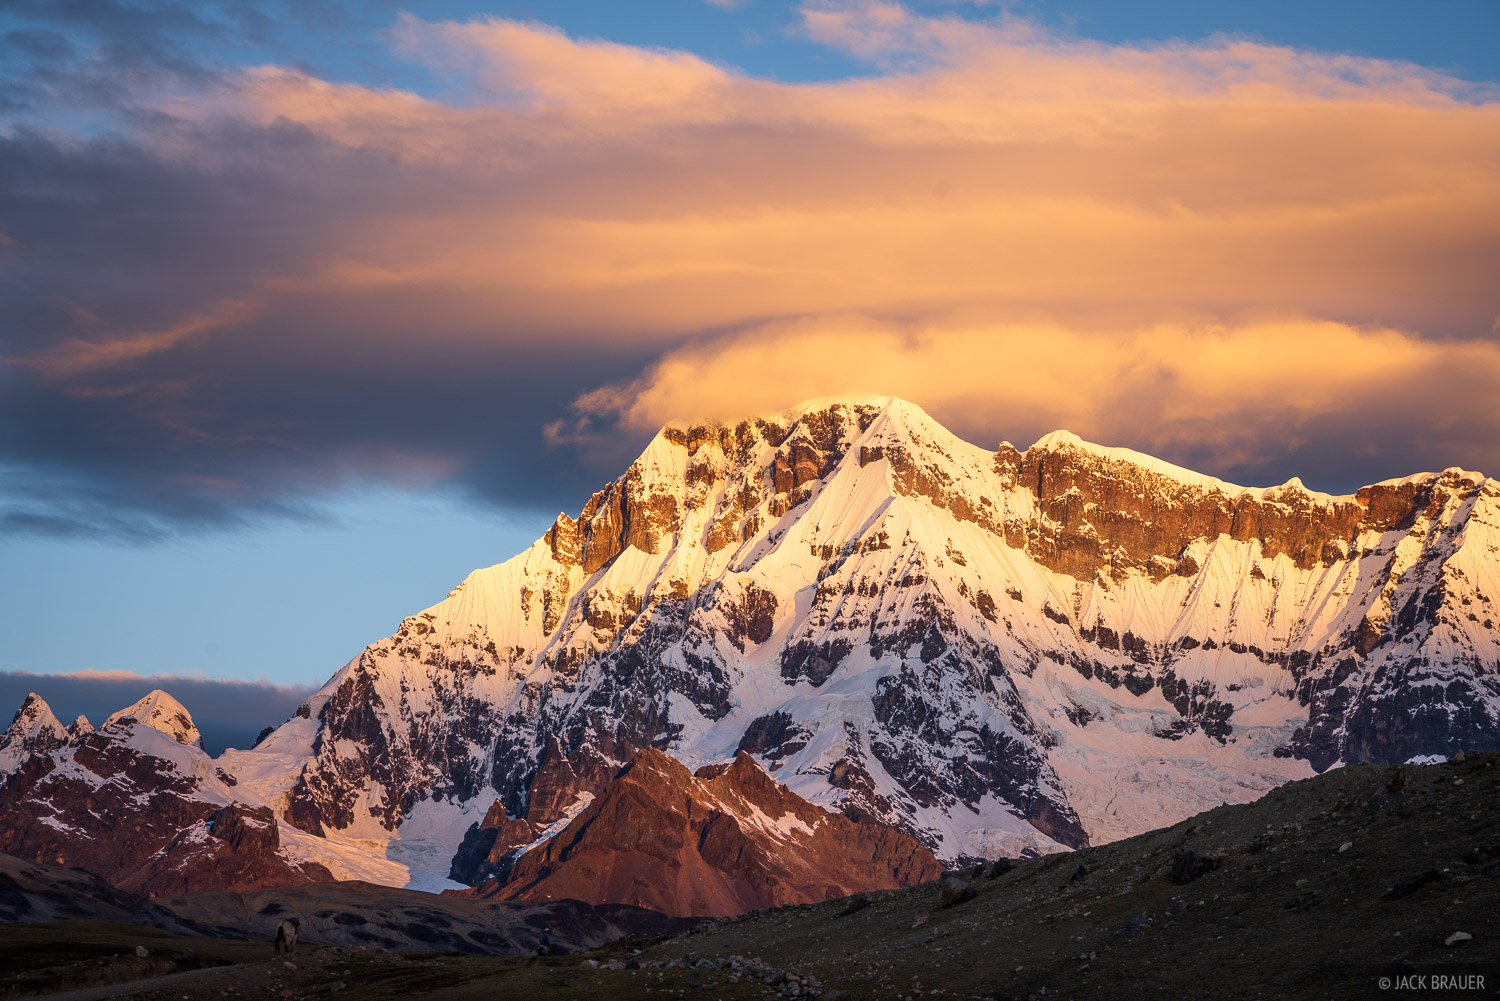 Ausangate, Cordillera Vilcanota, Peru, South America, Upis, sunset, photo